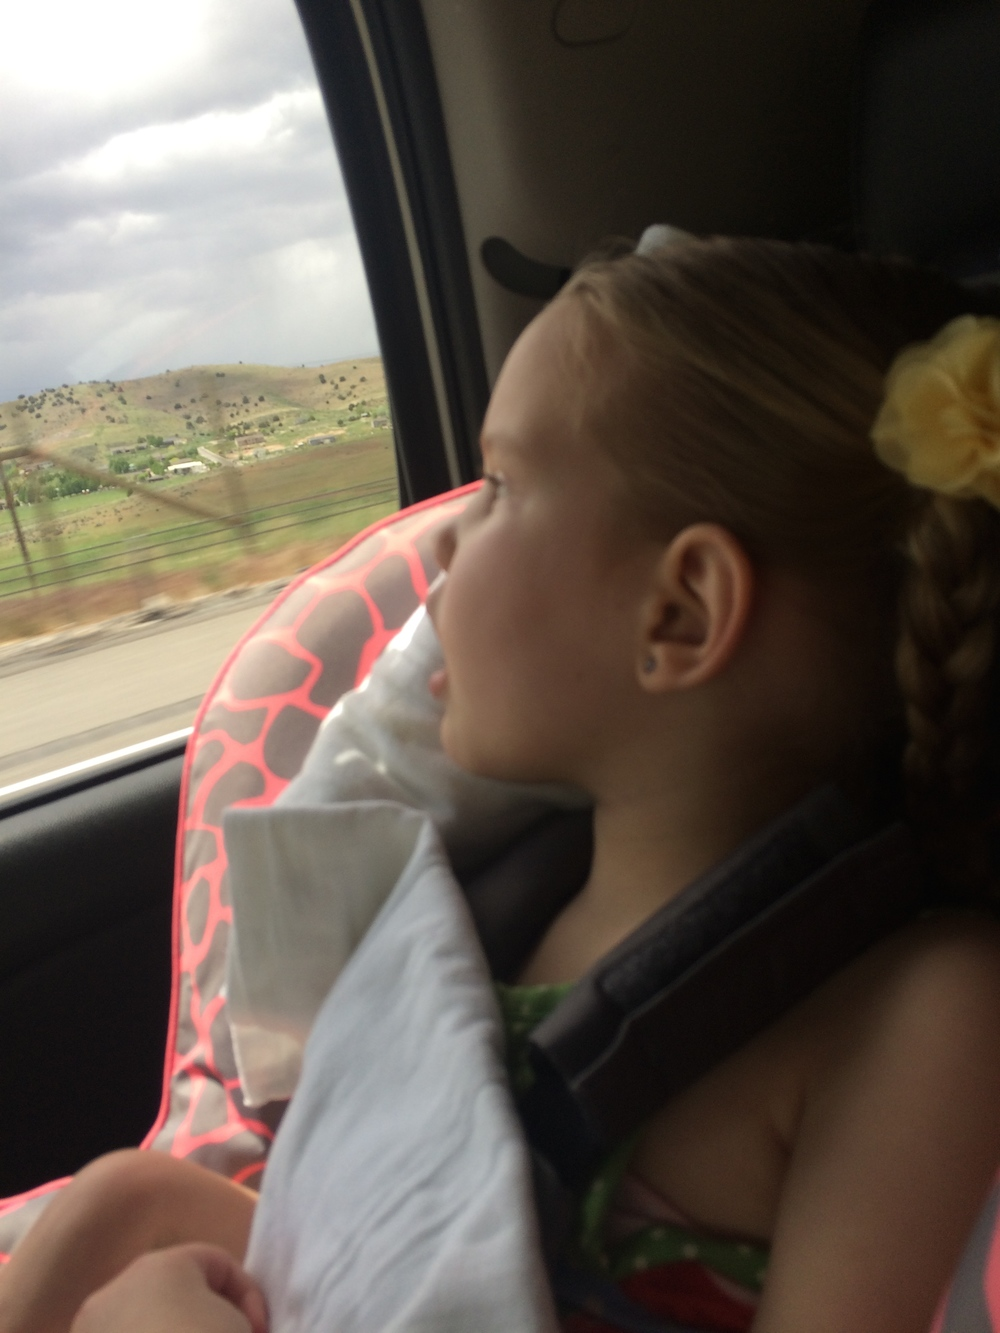 We had no idea how Kycie would handle the 310 mile drive from Primary Children's Hospital in Salt Lake City to her house in St. George.